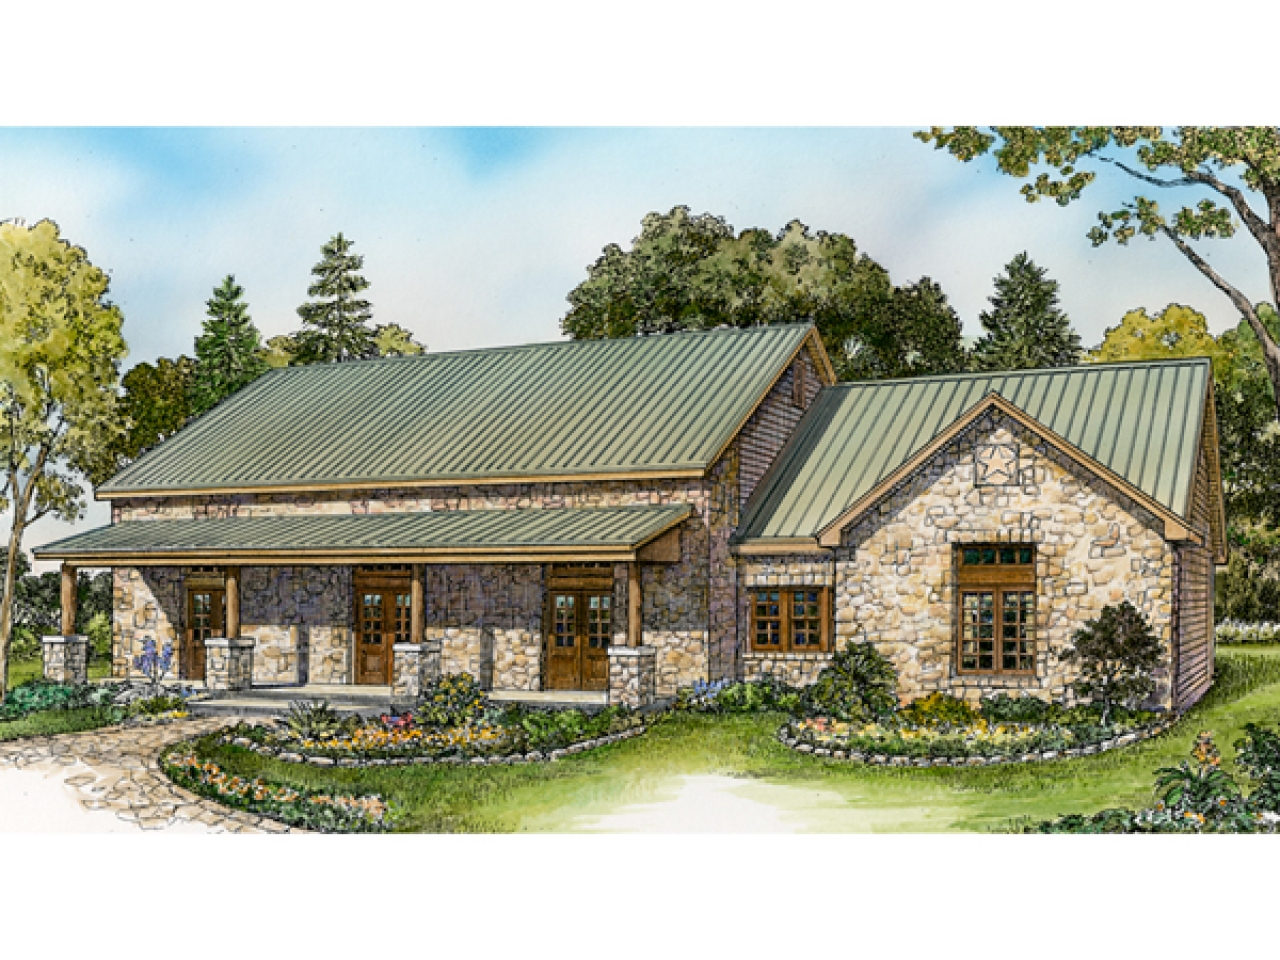 Rustic ranch style house plans western ranch house plans for Western ranch house plans